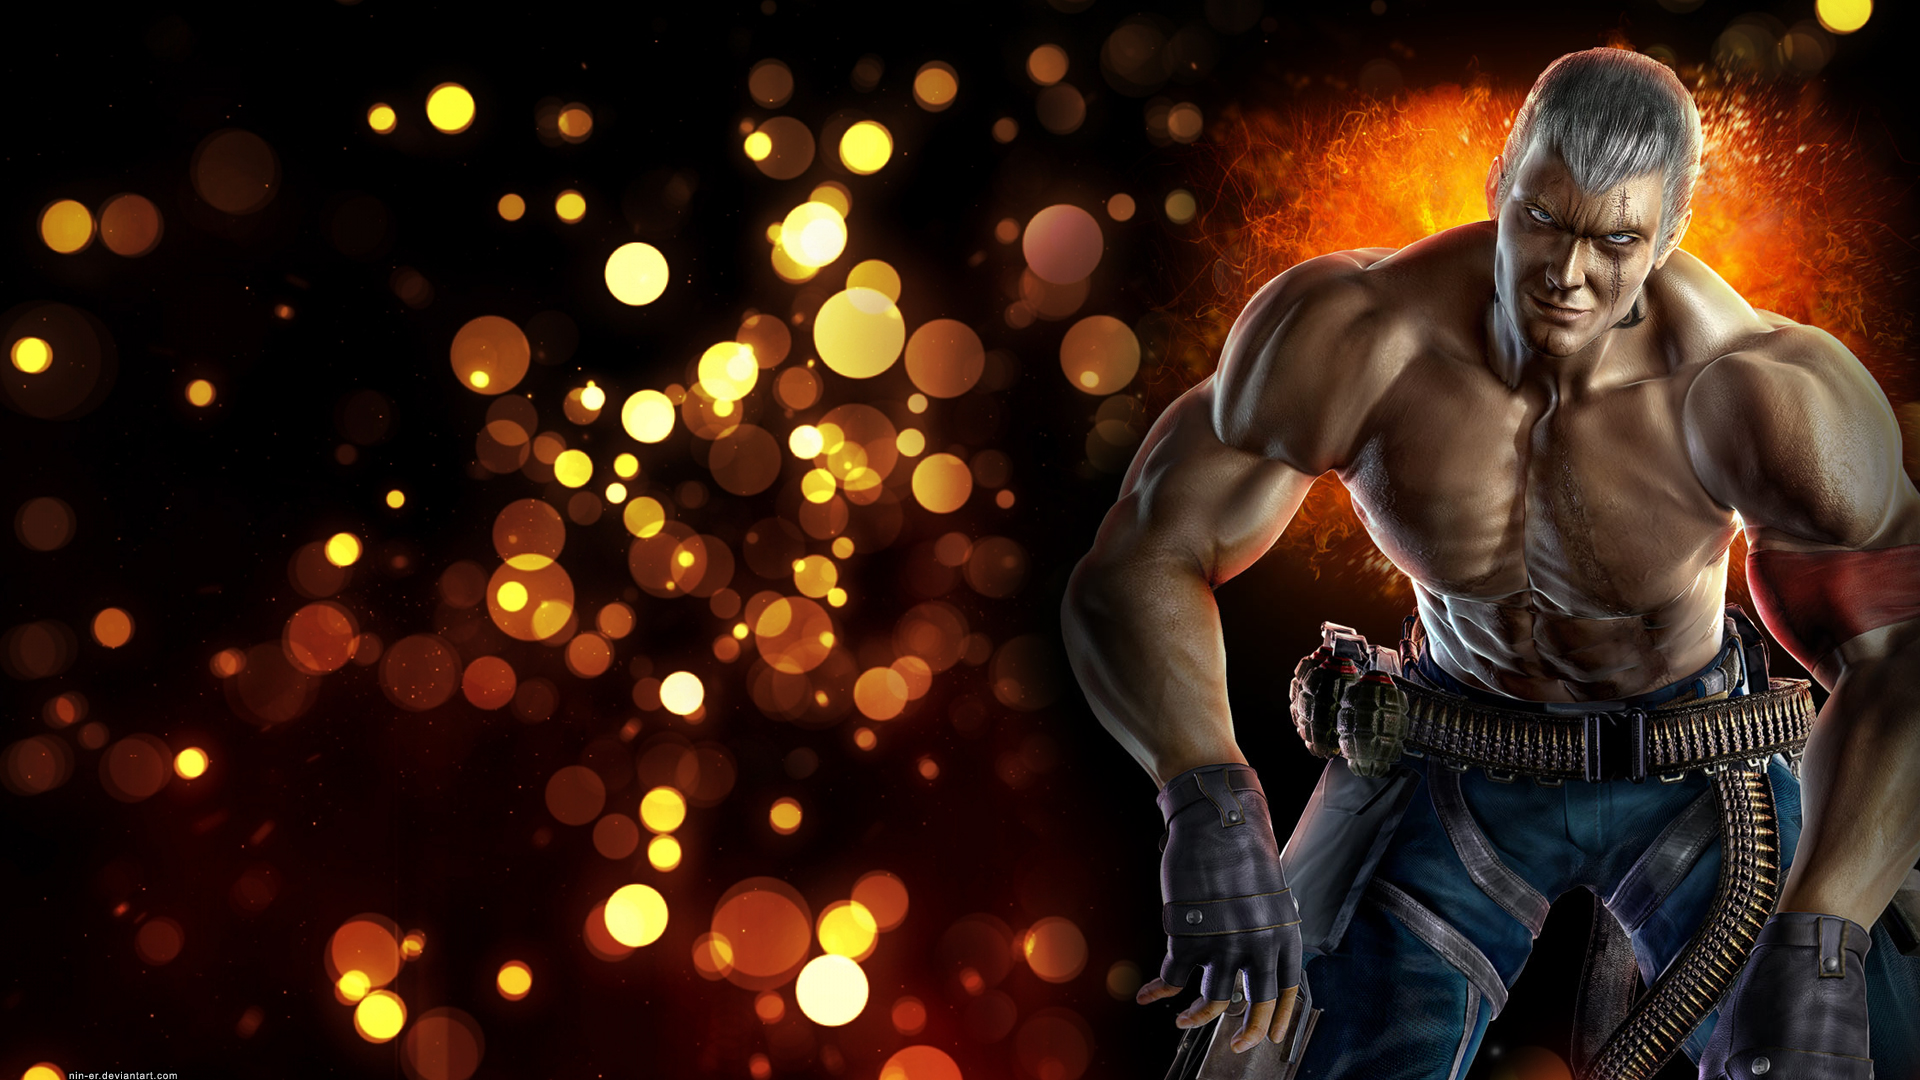 Tekken Wallpaper HD